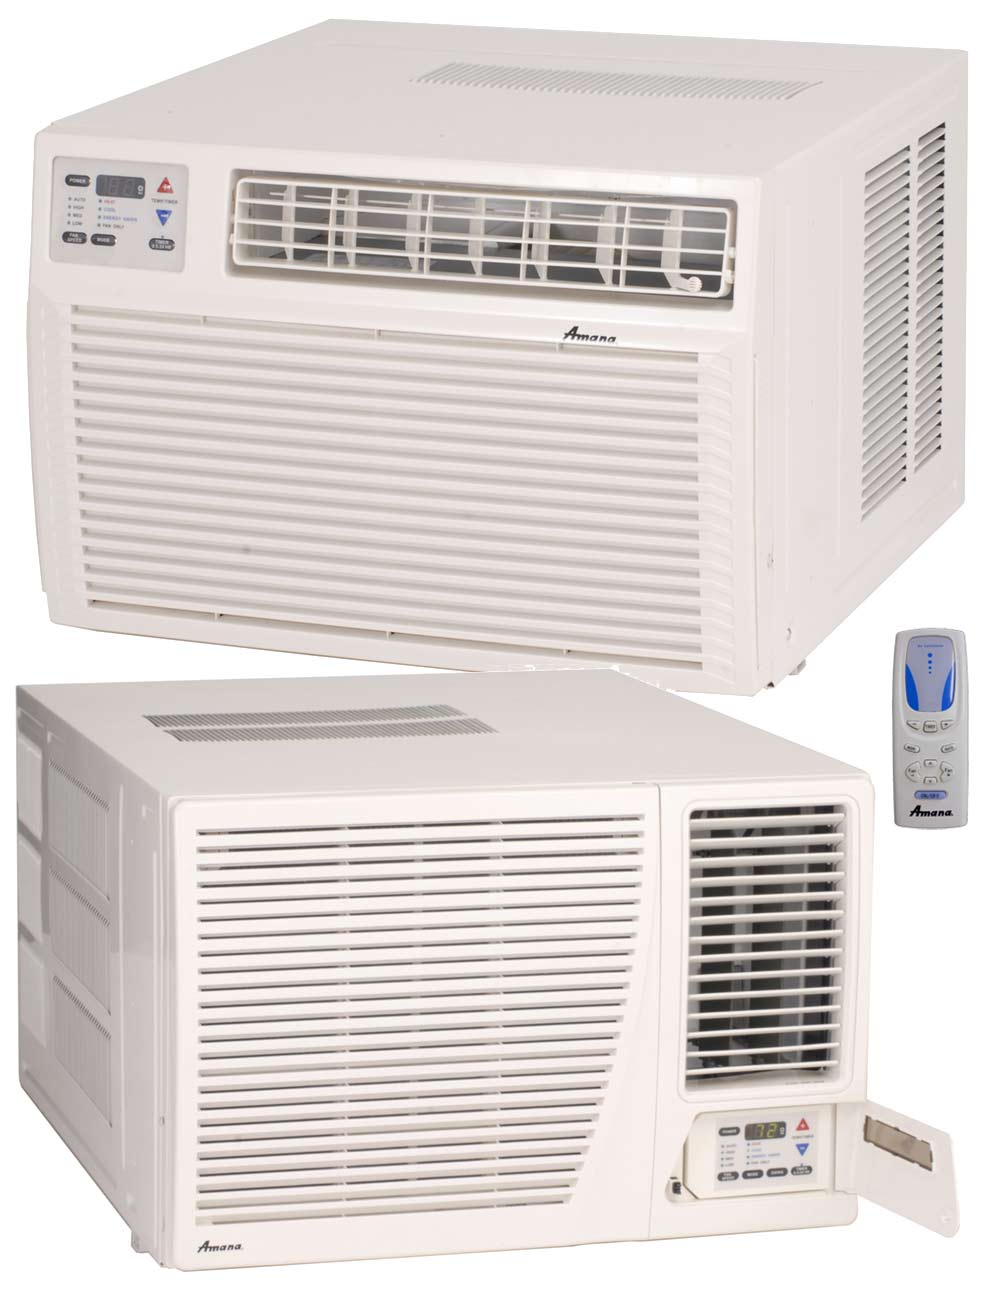 Heating Cooling Units For Home : Amana ″ ptac heating cooling units hamilton home